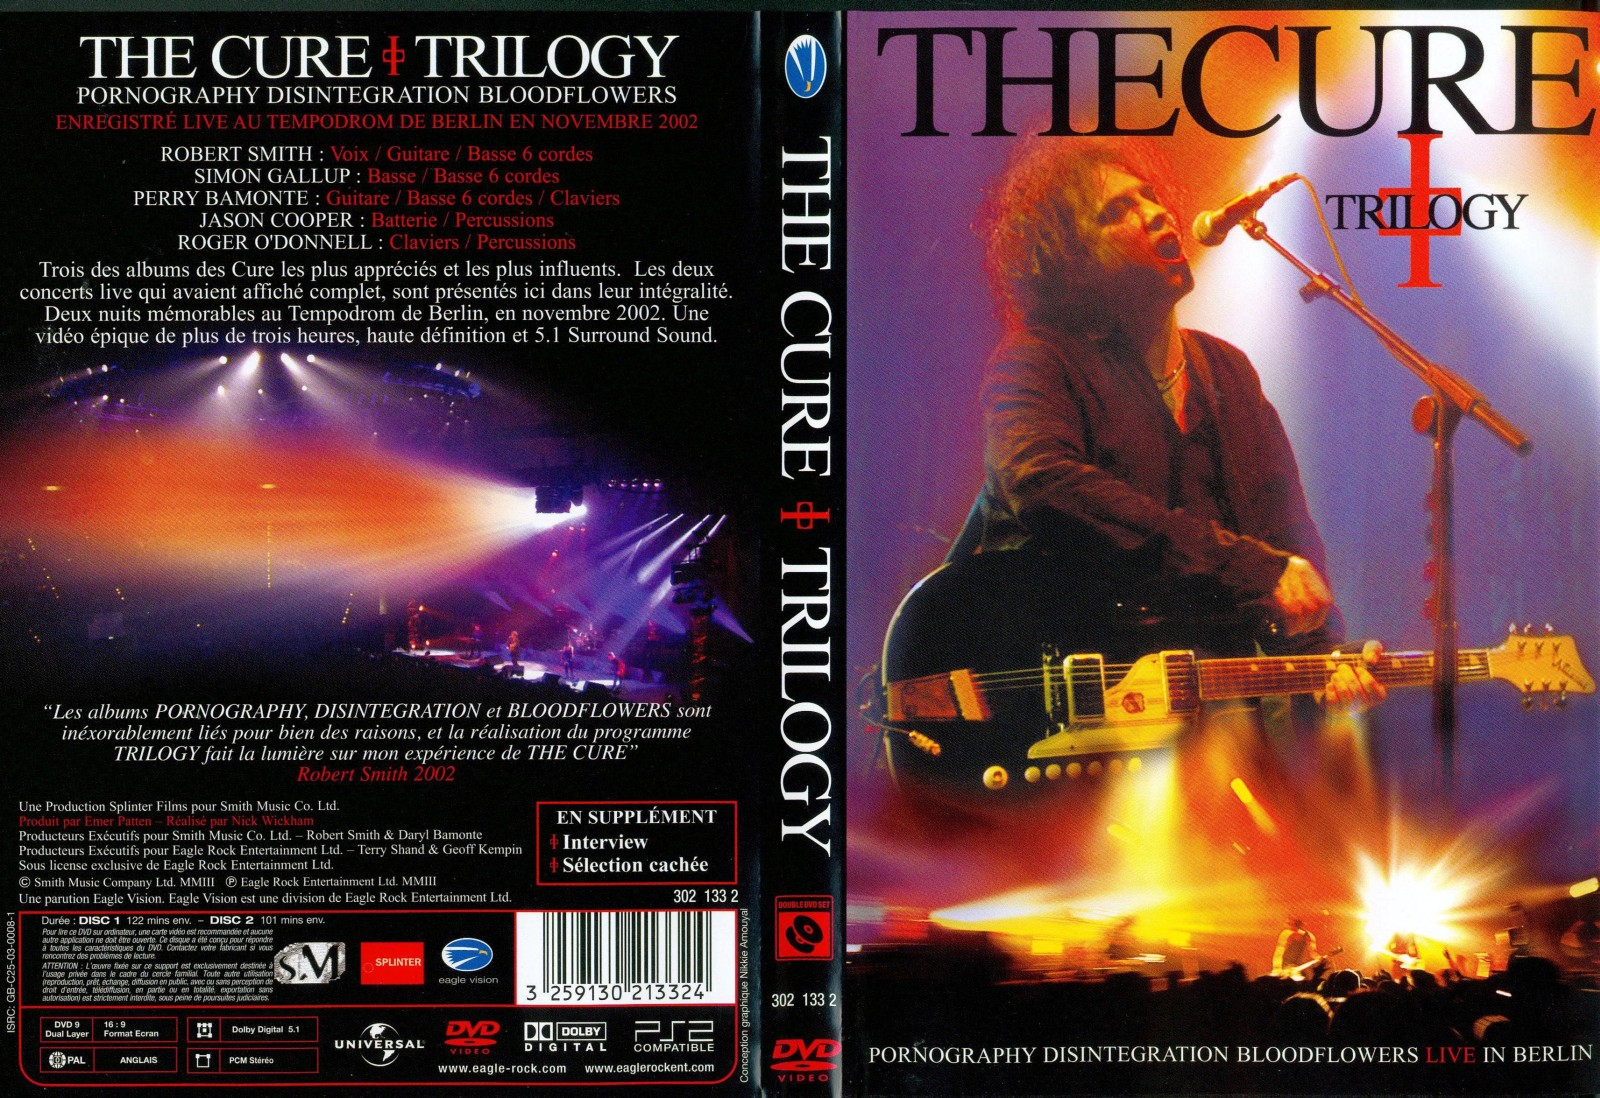 The Cure - Página 2 The_Cure_trilogy-20350218022006